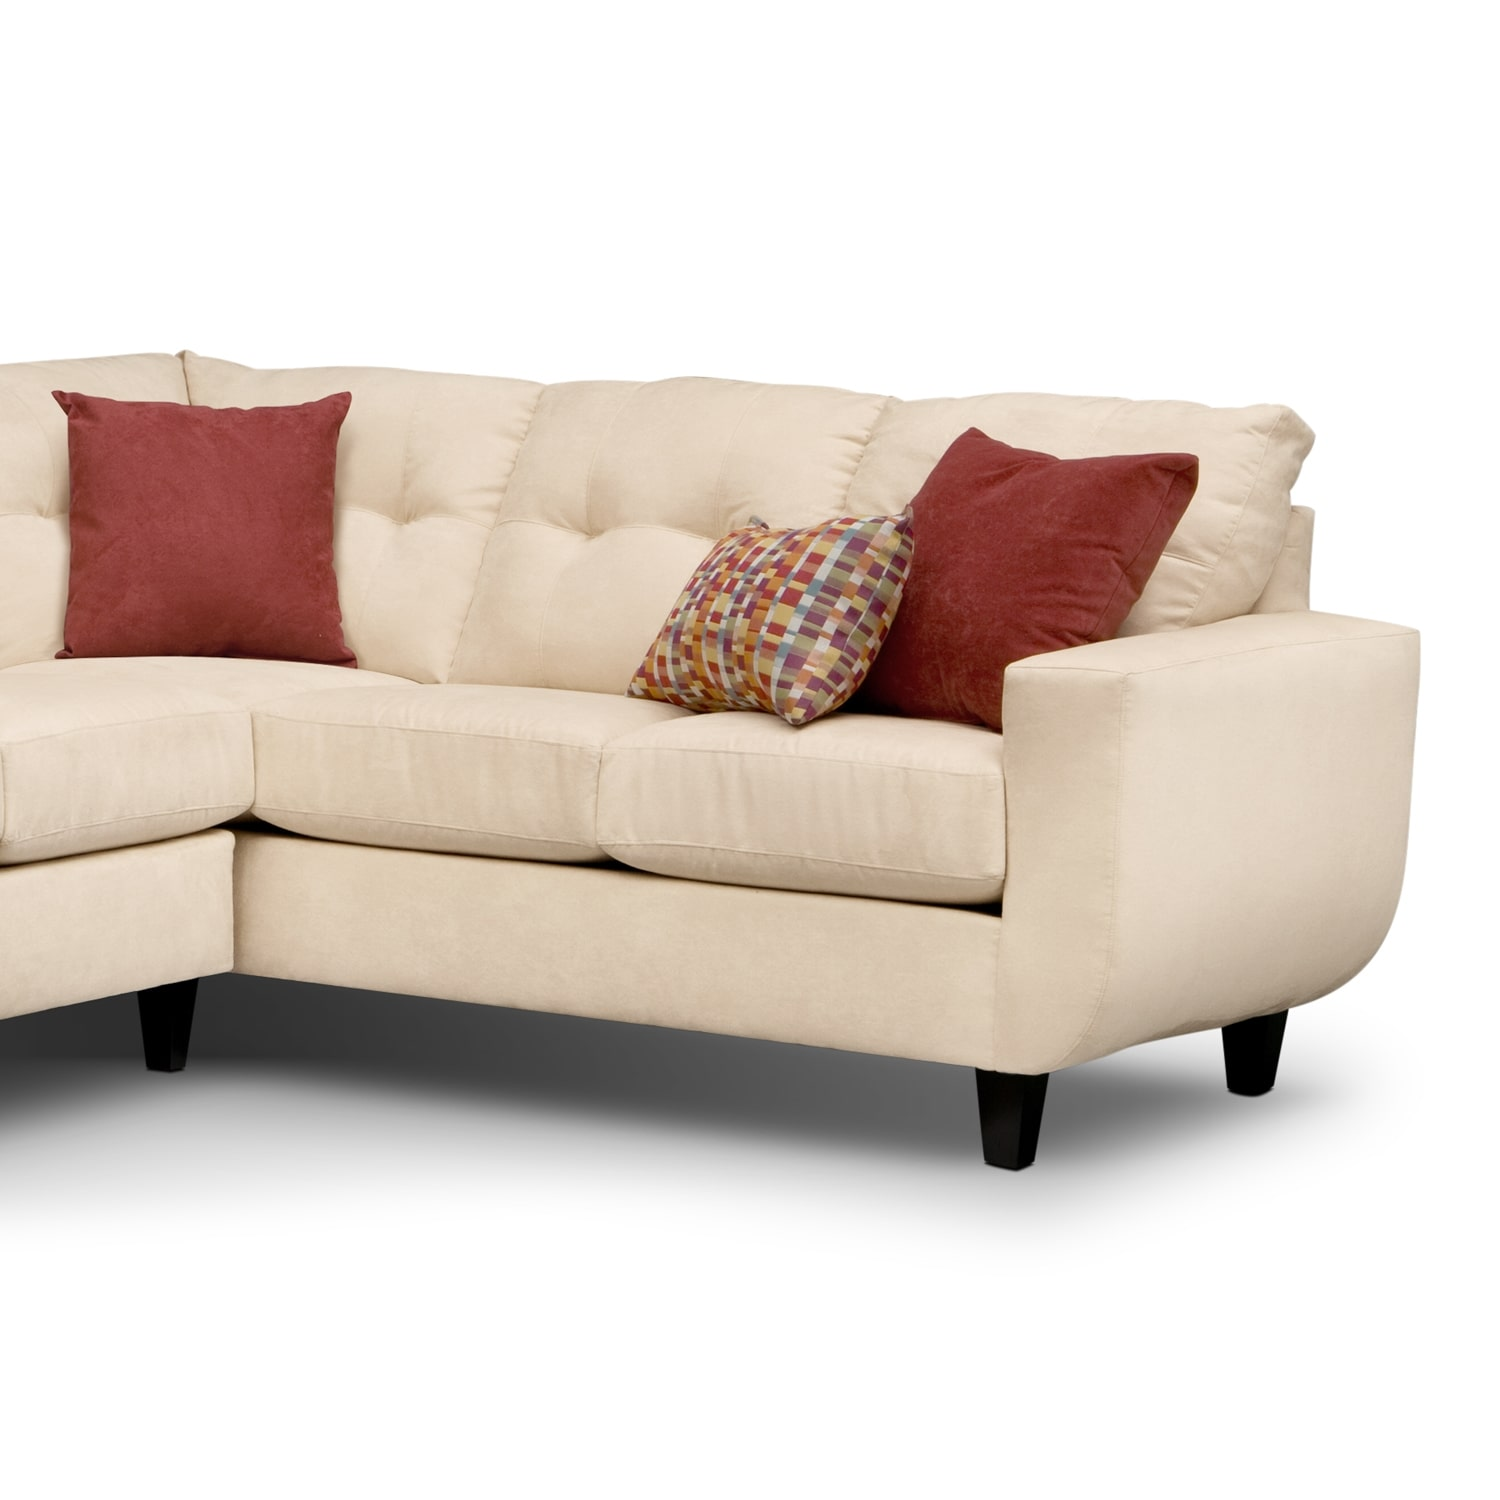 West Village Cream Ii Upholstery 2 Pc Sectional Value City Furniture